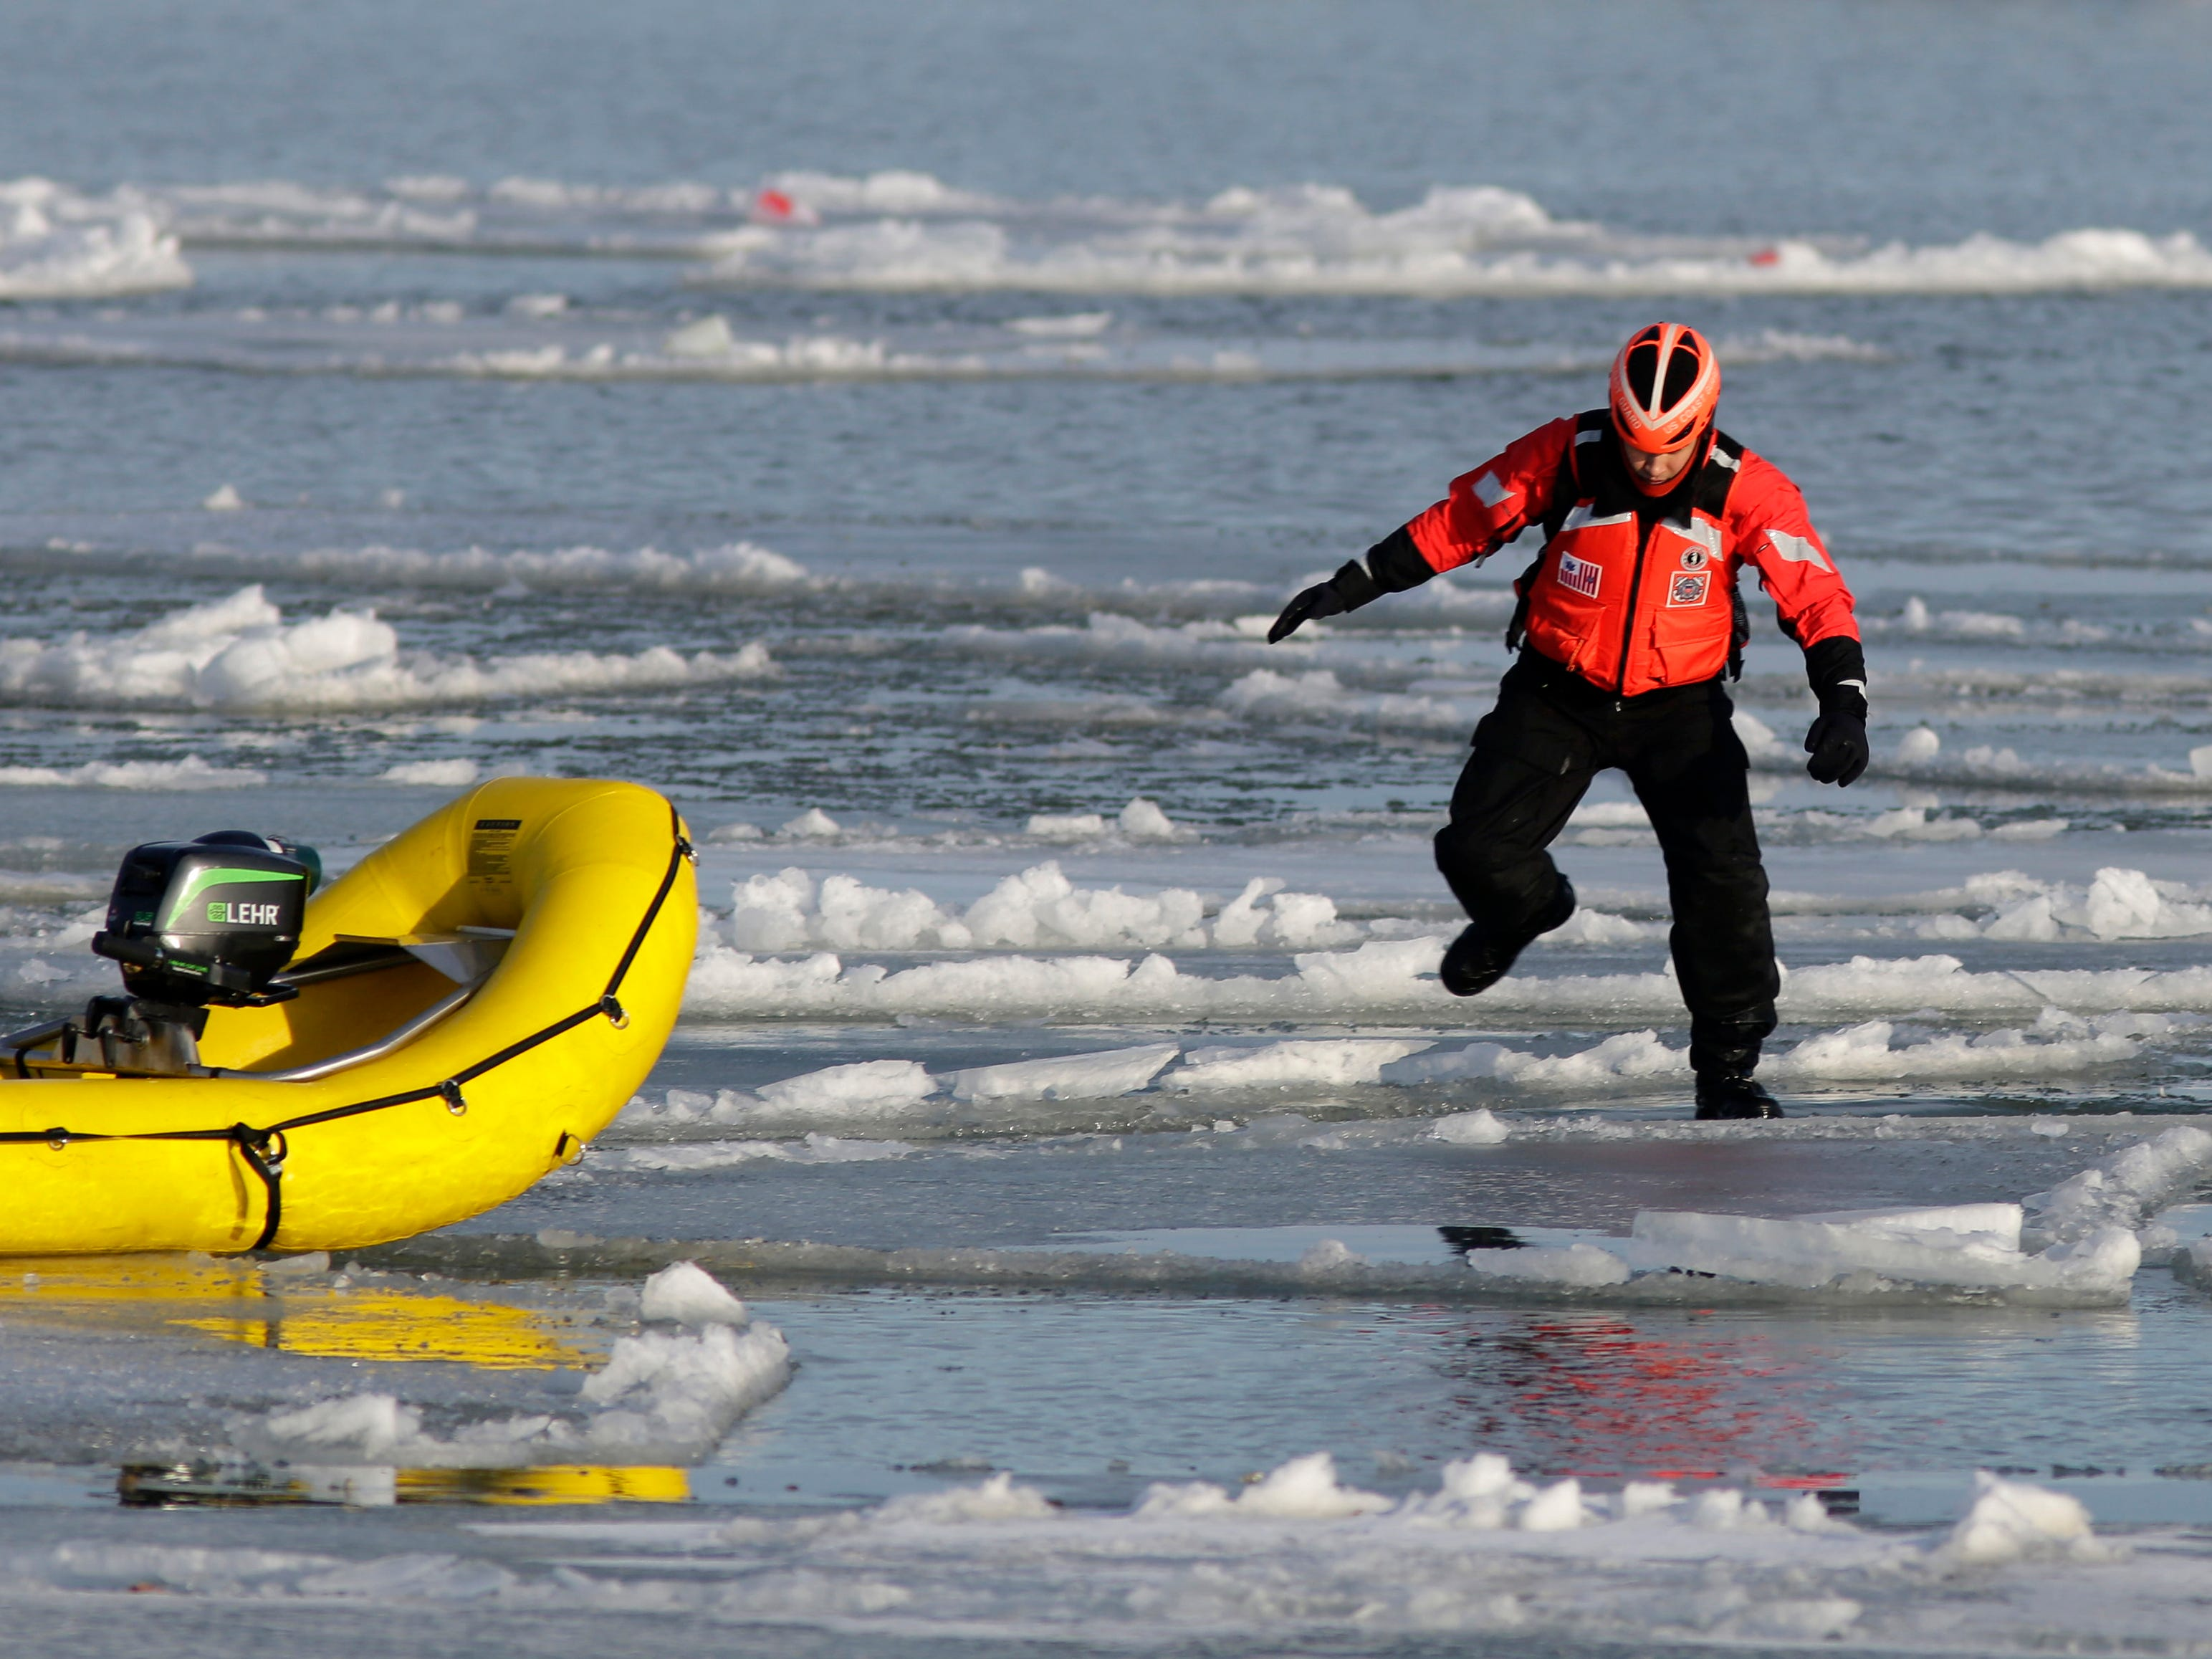 A U.S. Coast Guard member leaps on the broken ice during ice rescue training, Tuesday, January 9, 2018, at Sheboygan, Wis. The Guard trains each winter to certify their skills in ice rescue.